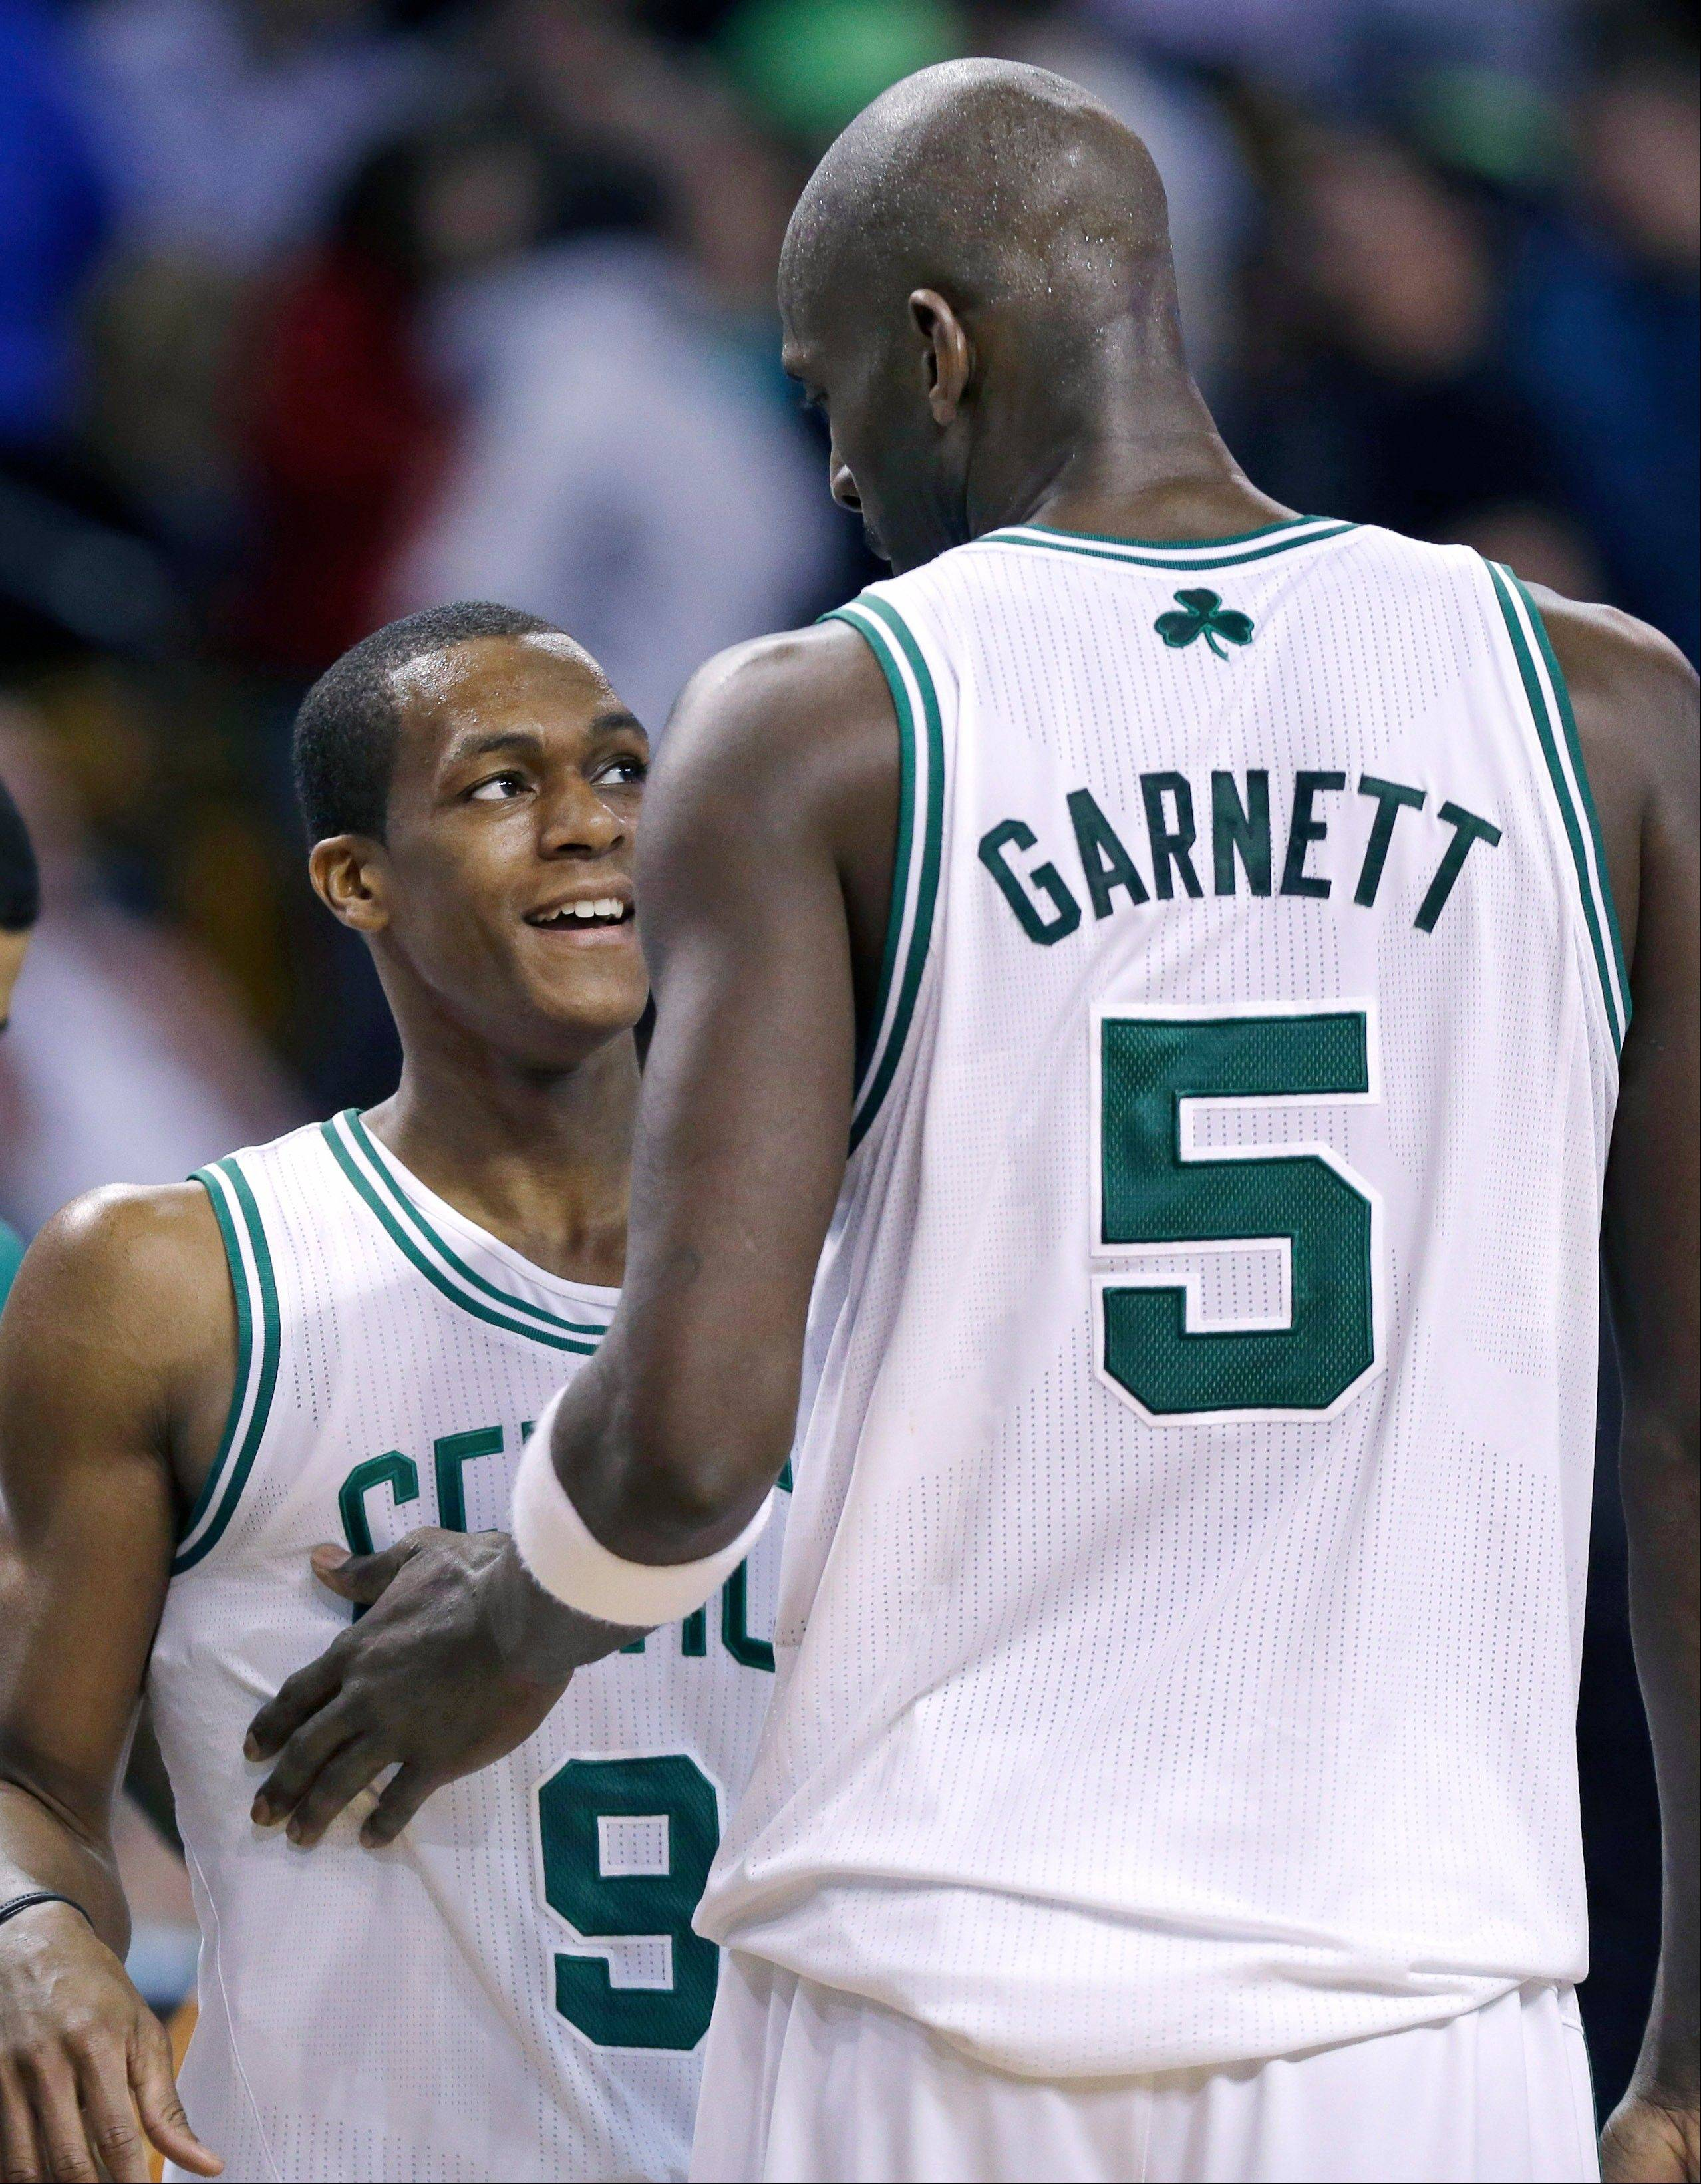 Boston Celtics forward Kevin Garnett (5) pats guard Rajon Rondo (9) on the chest near the end of an NBA basketball game Wednesday against the Phoenix Suns in Boston. The Celtics won 87-79.